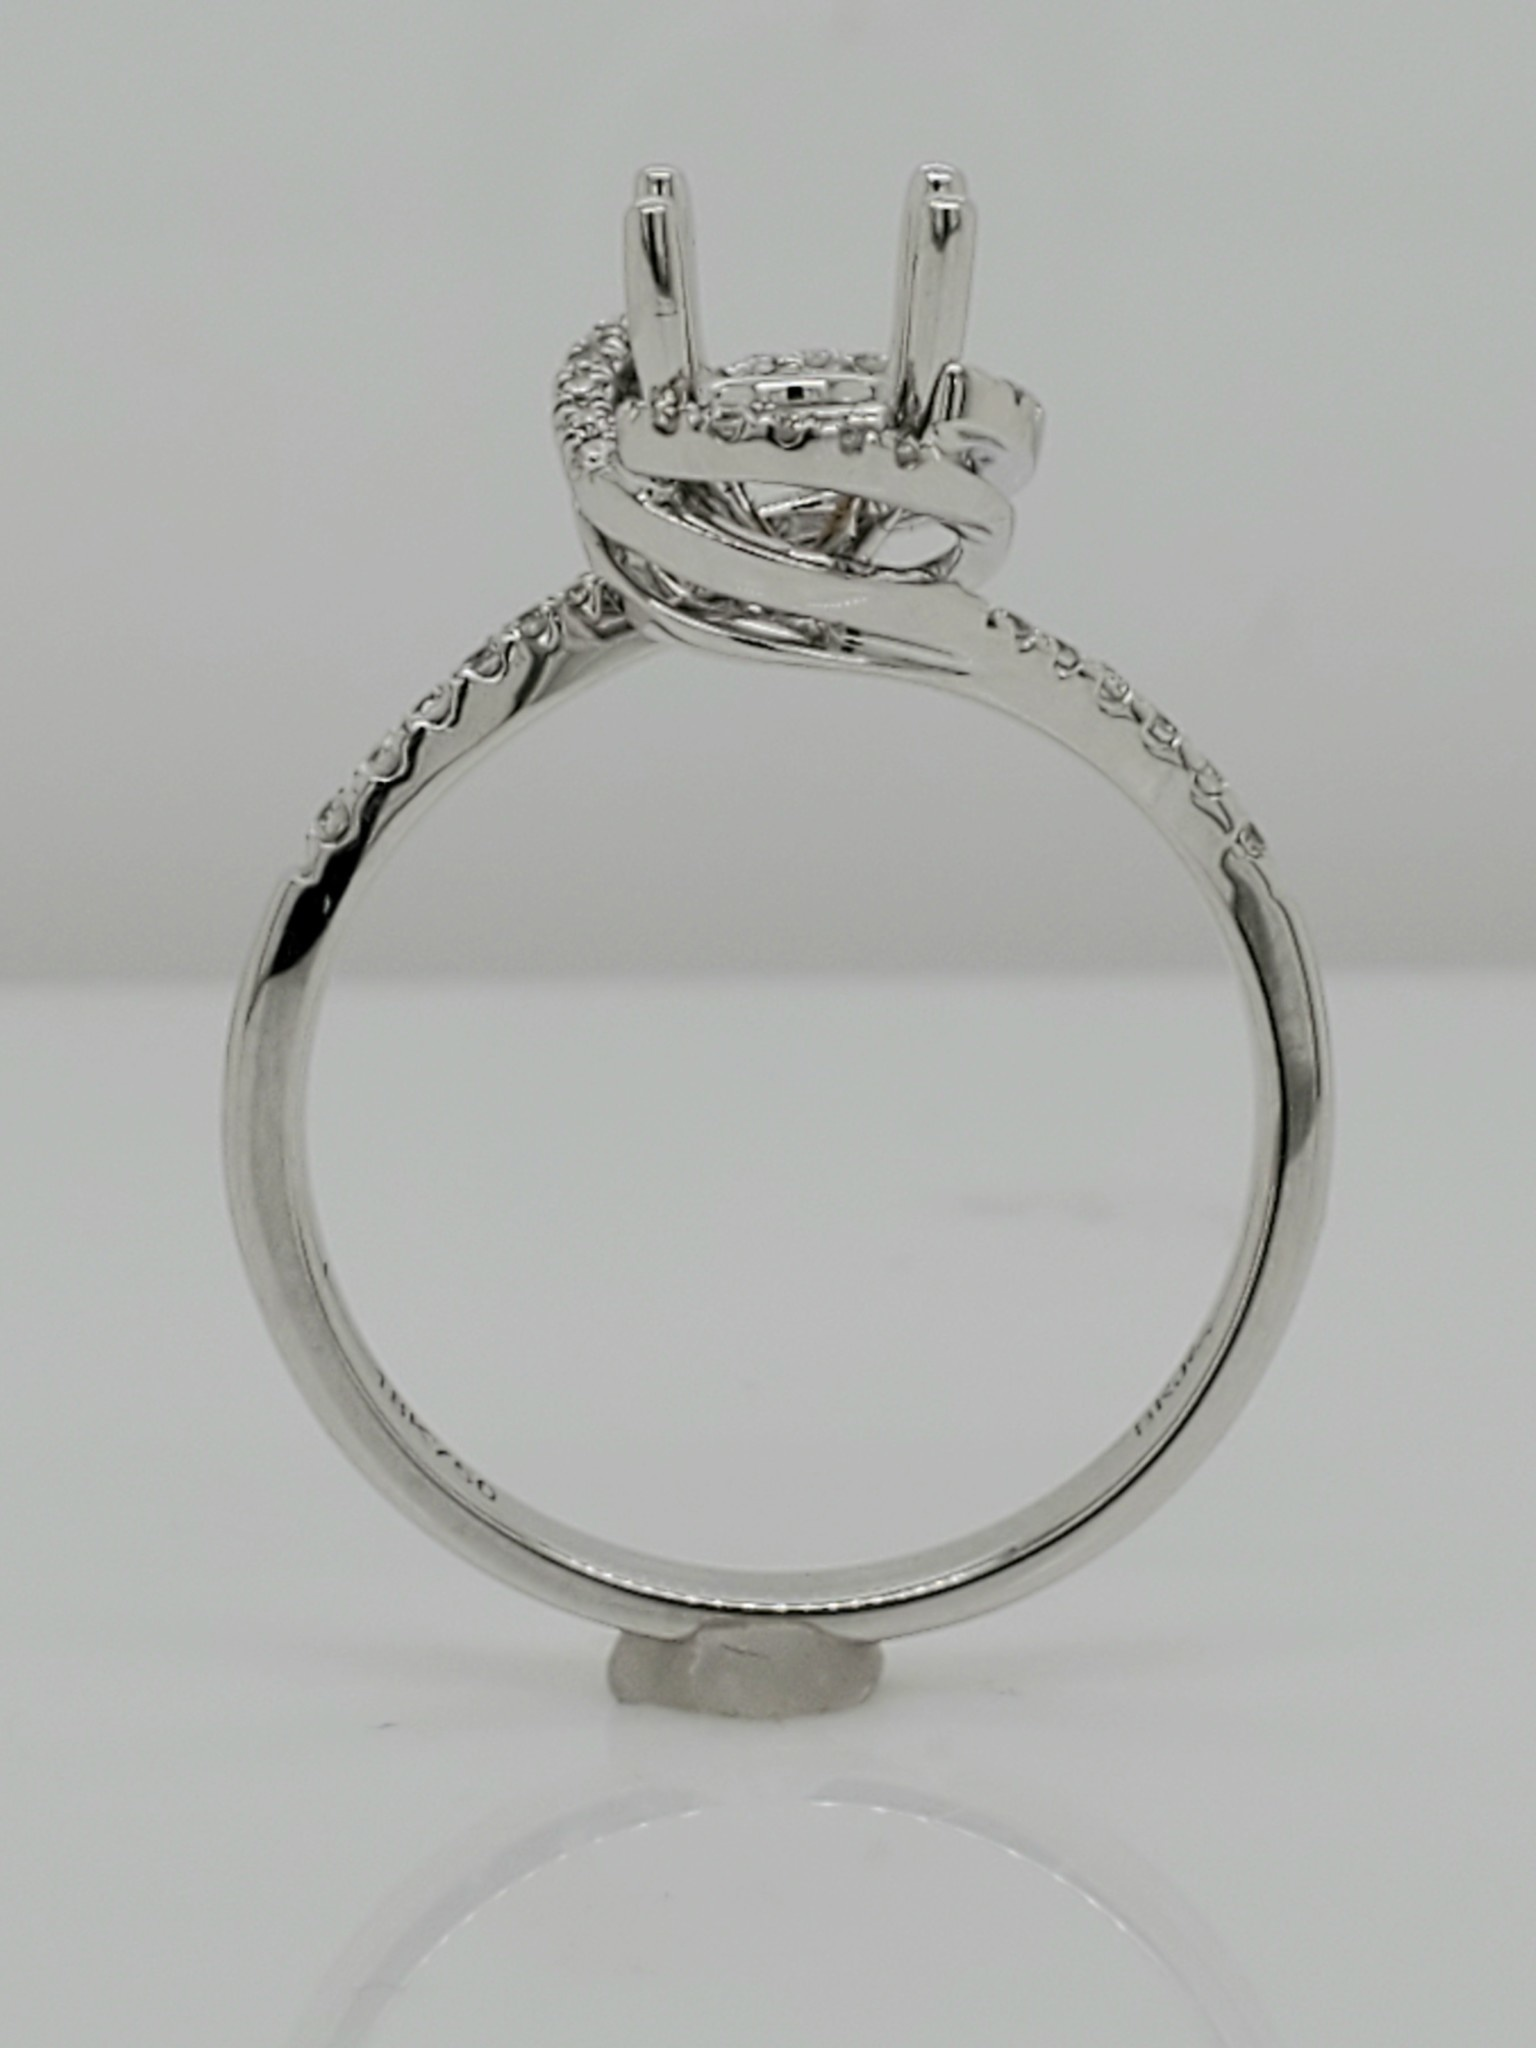 18KT White Gold Diamond Engagement Ring Setting w/ Halo 0.13 CTTW